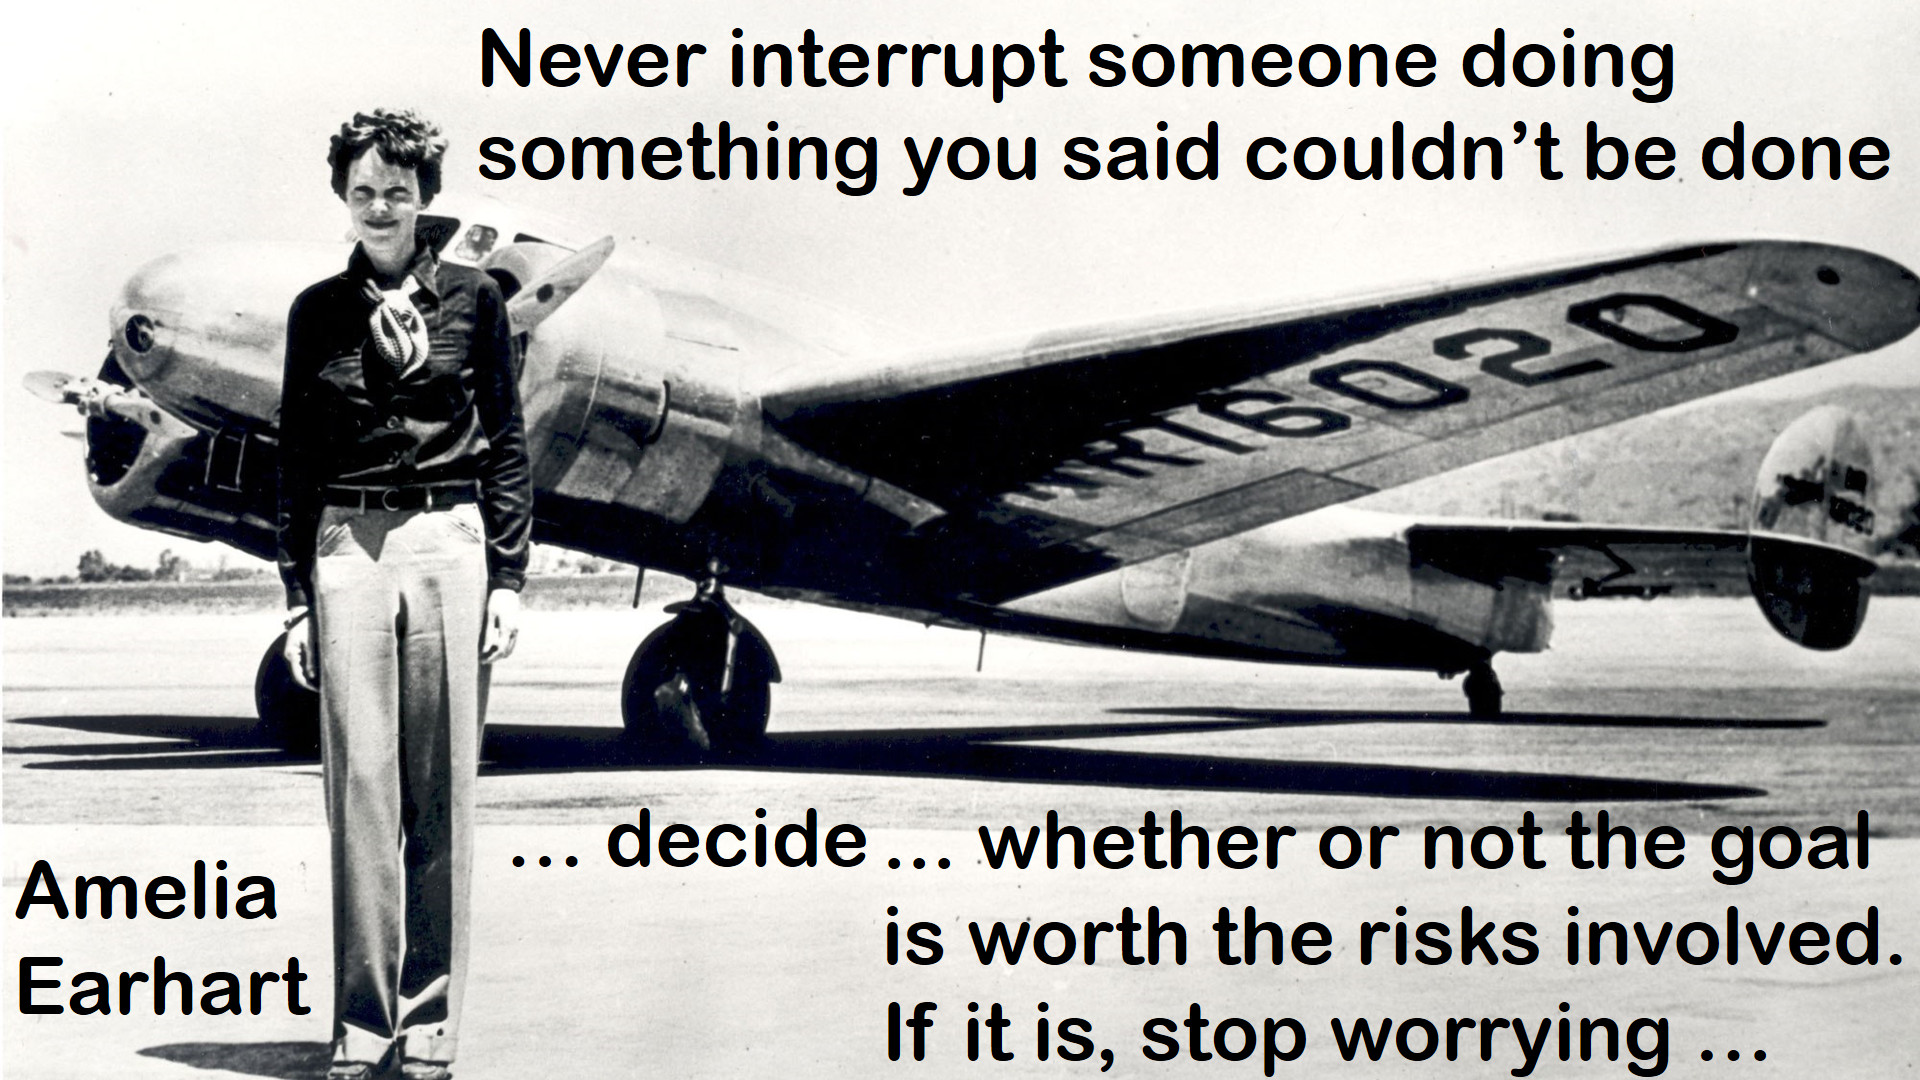 Never interrupt someone doing something you said couldn't be done ... decide ... whether or not the goal is worth the risks involved. If it is, stop worrying ...